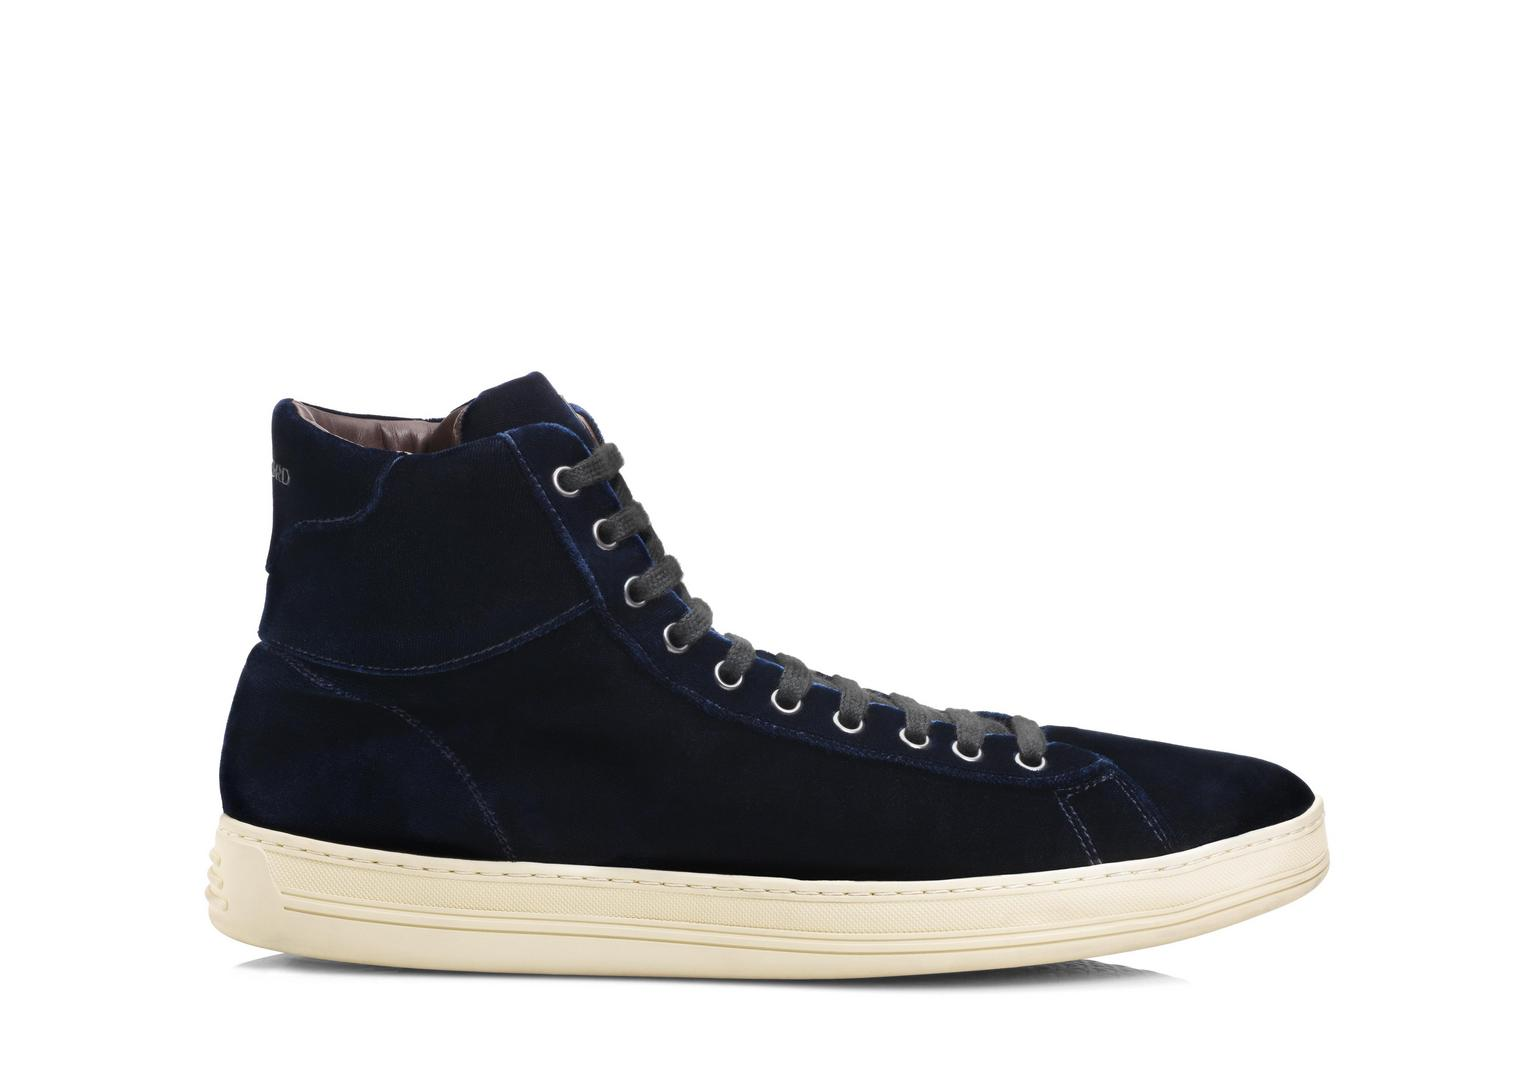 Russel Velvet High Top Sneaker